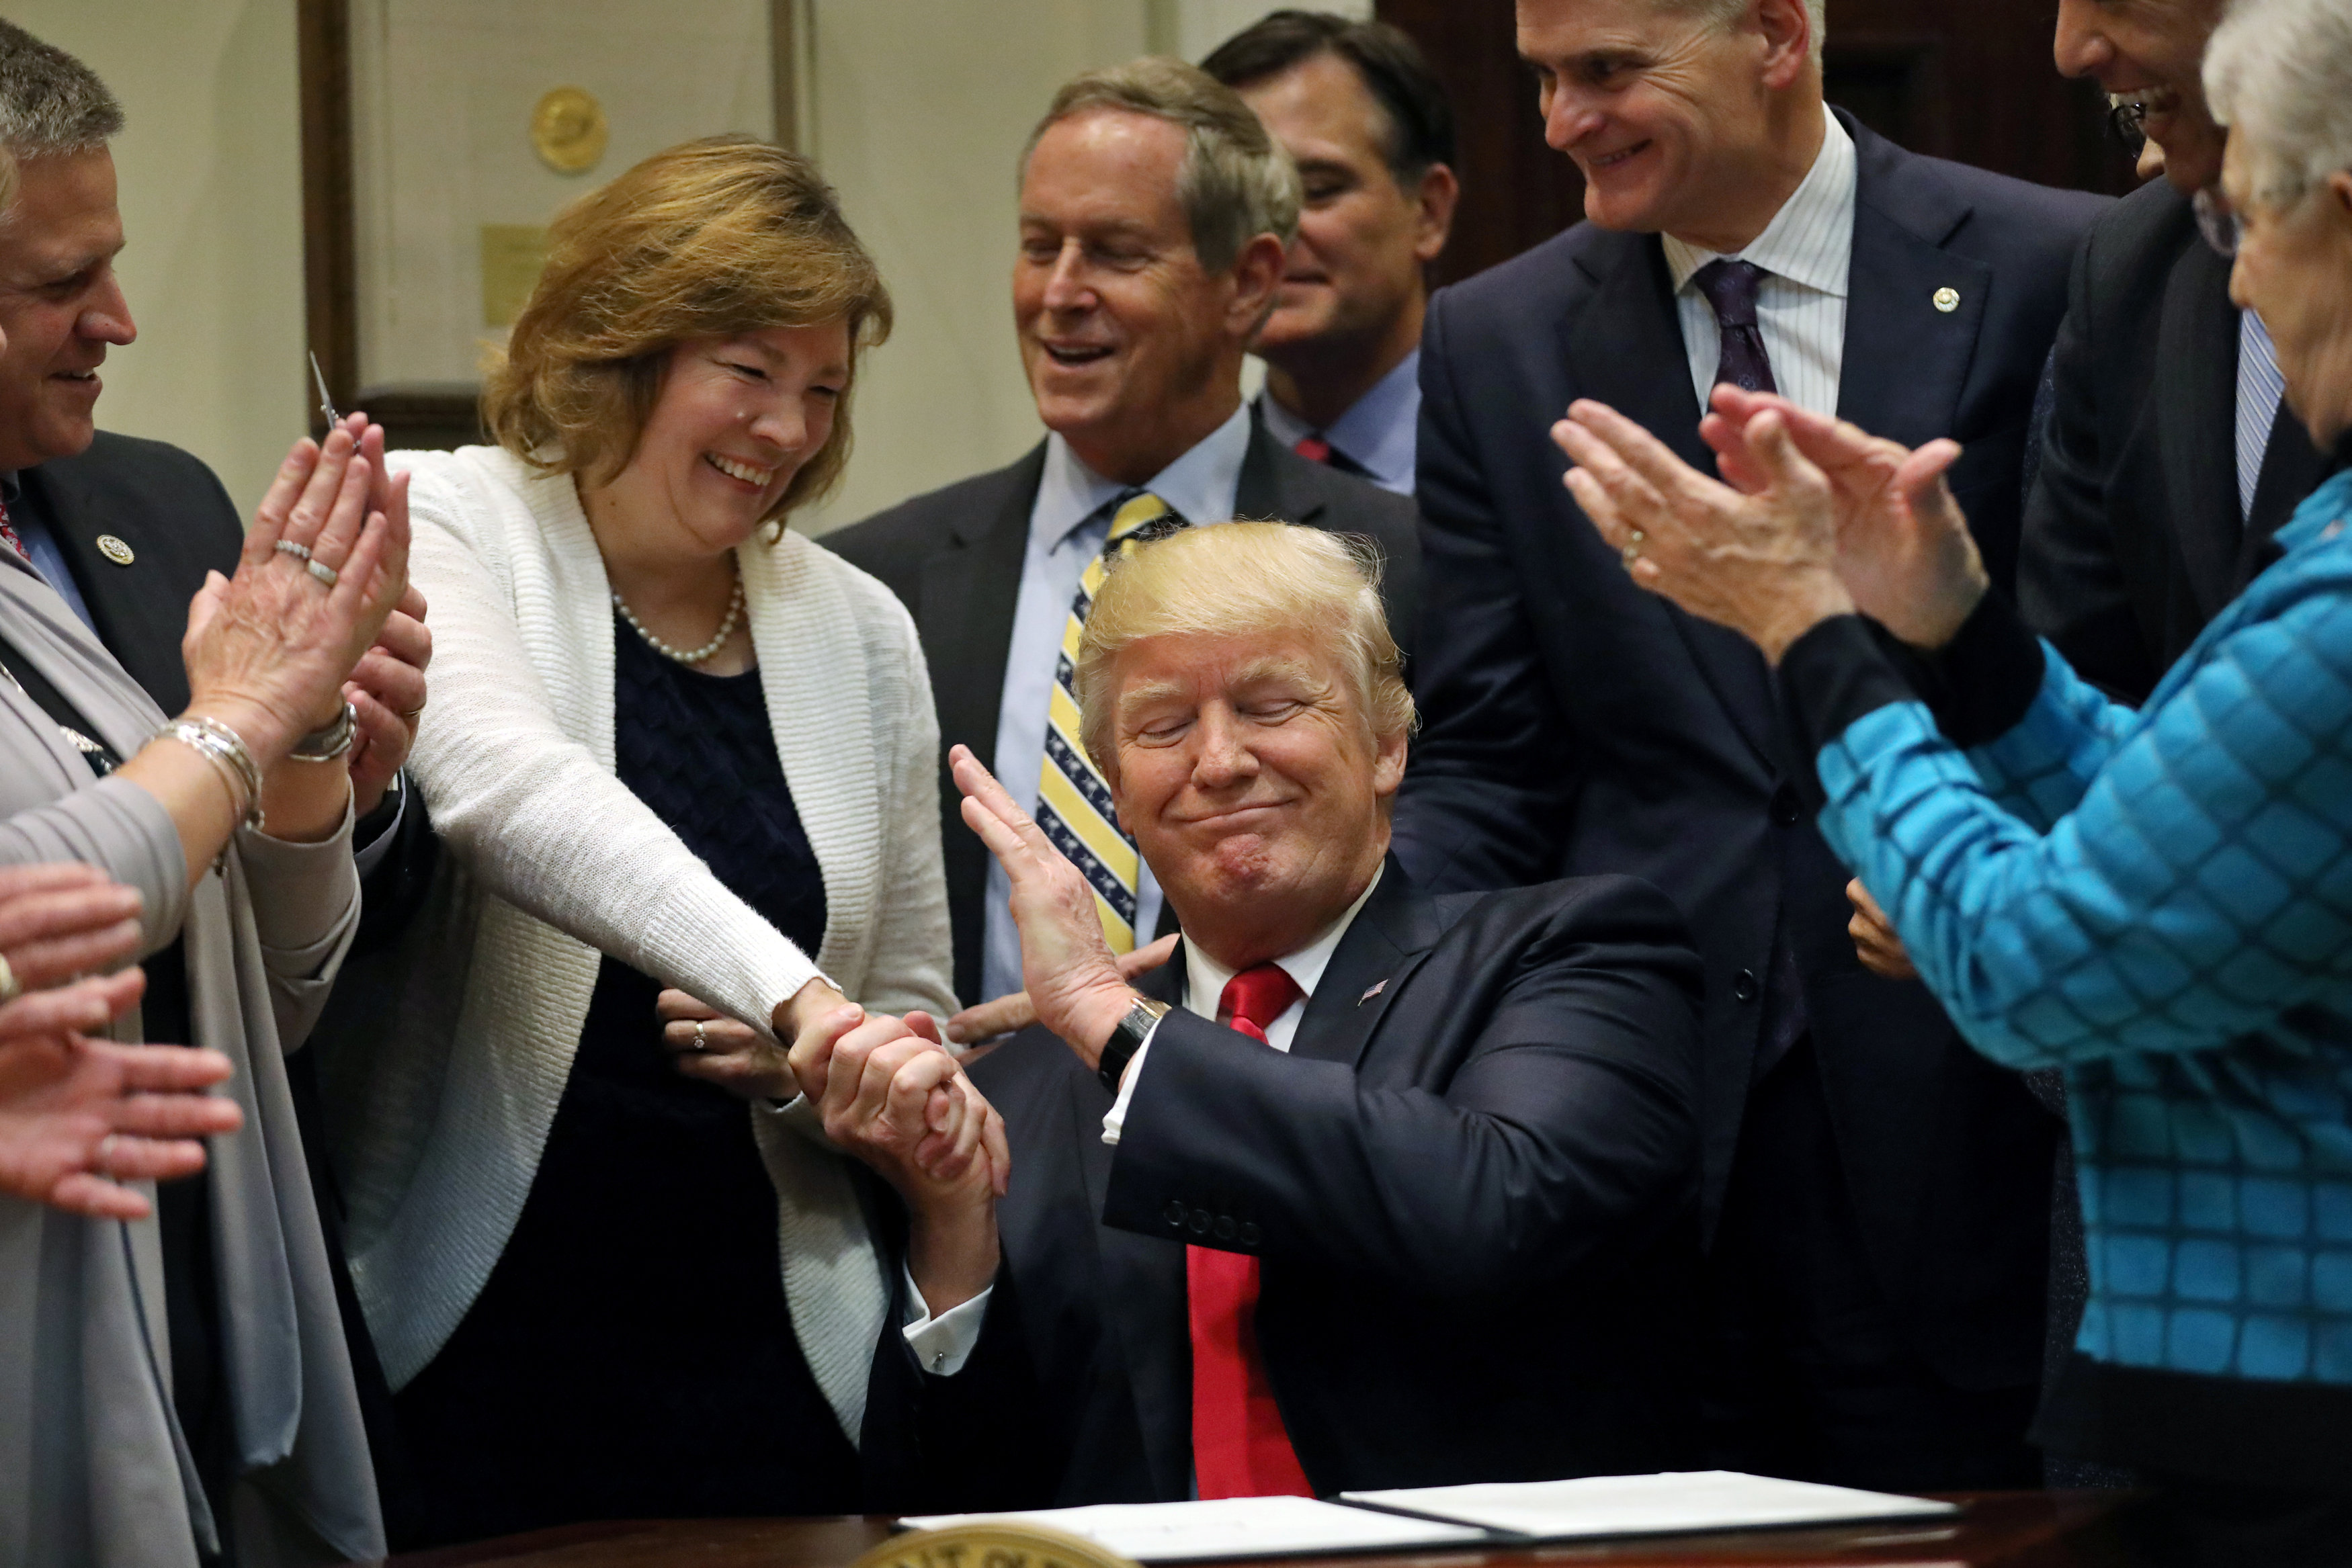 President Donald Trump reacts after signing an executive order on education during an event with Governors at the White House in Washington on April 26, 2017. (REUTERS/Carlos Barria)